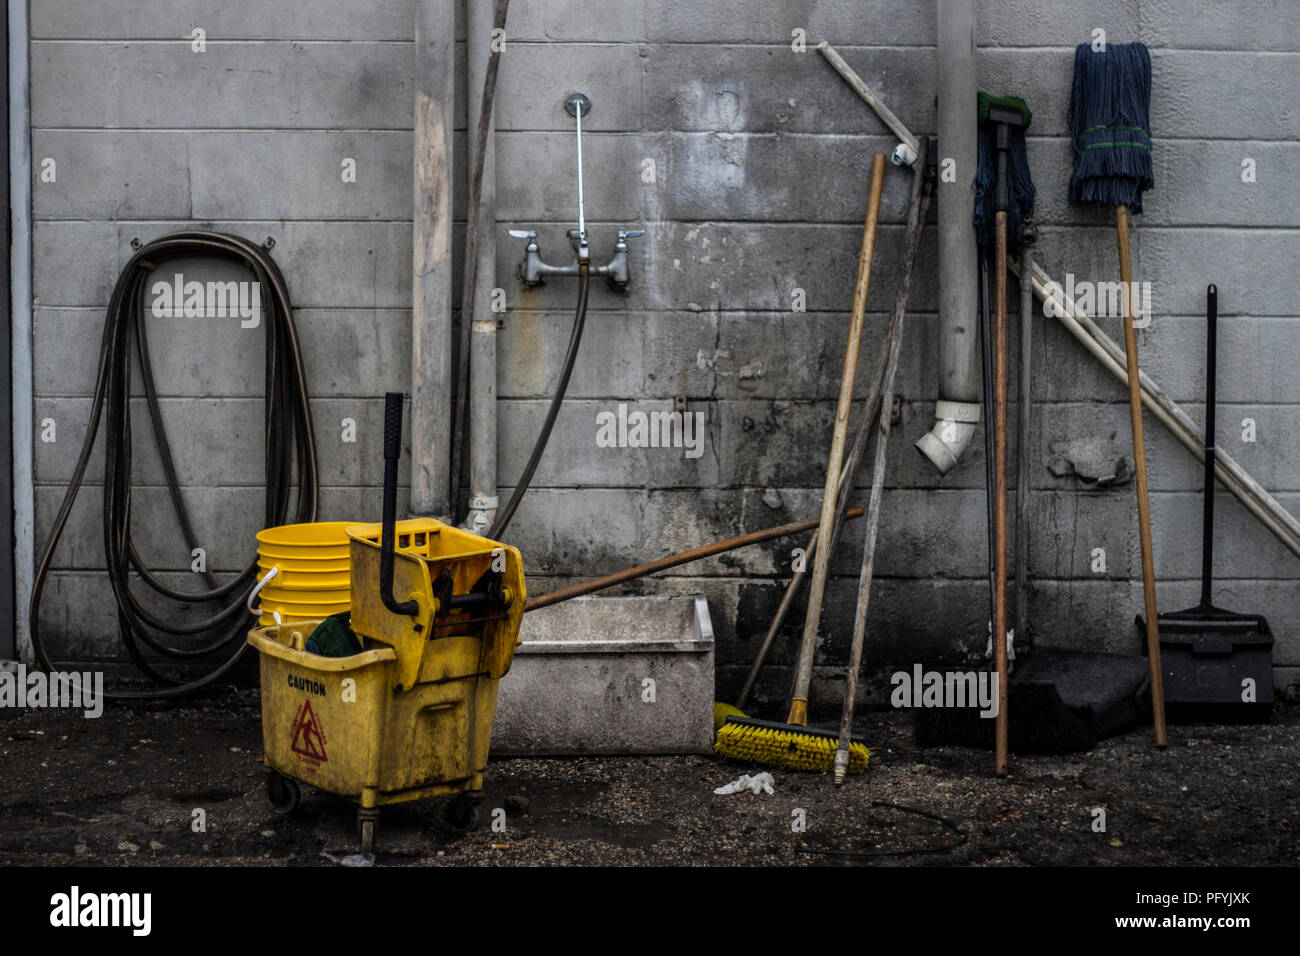 Mop Buckets and Cleaning - Stock Image